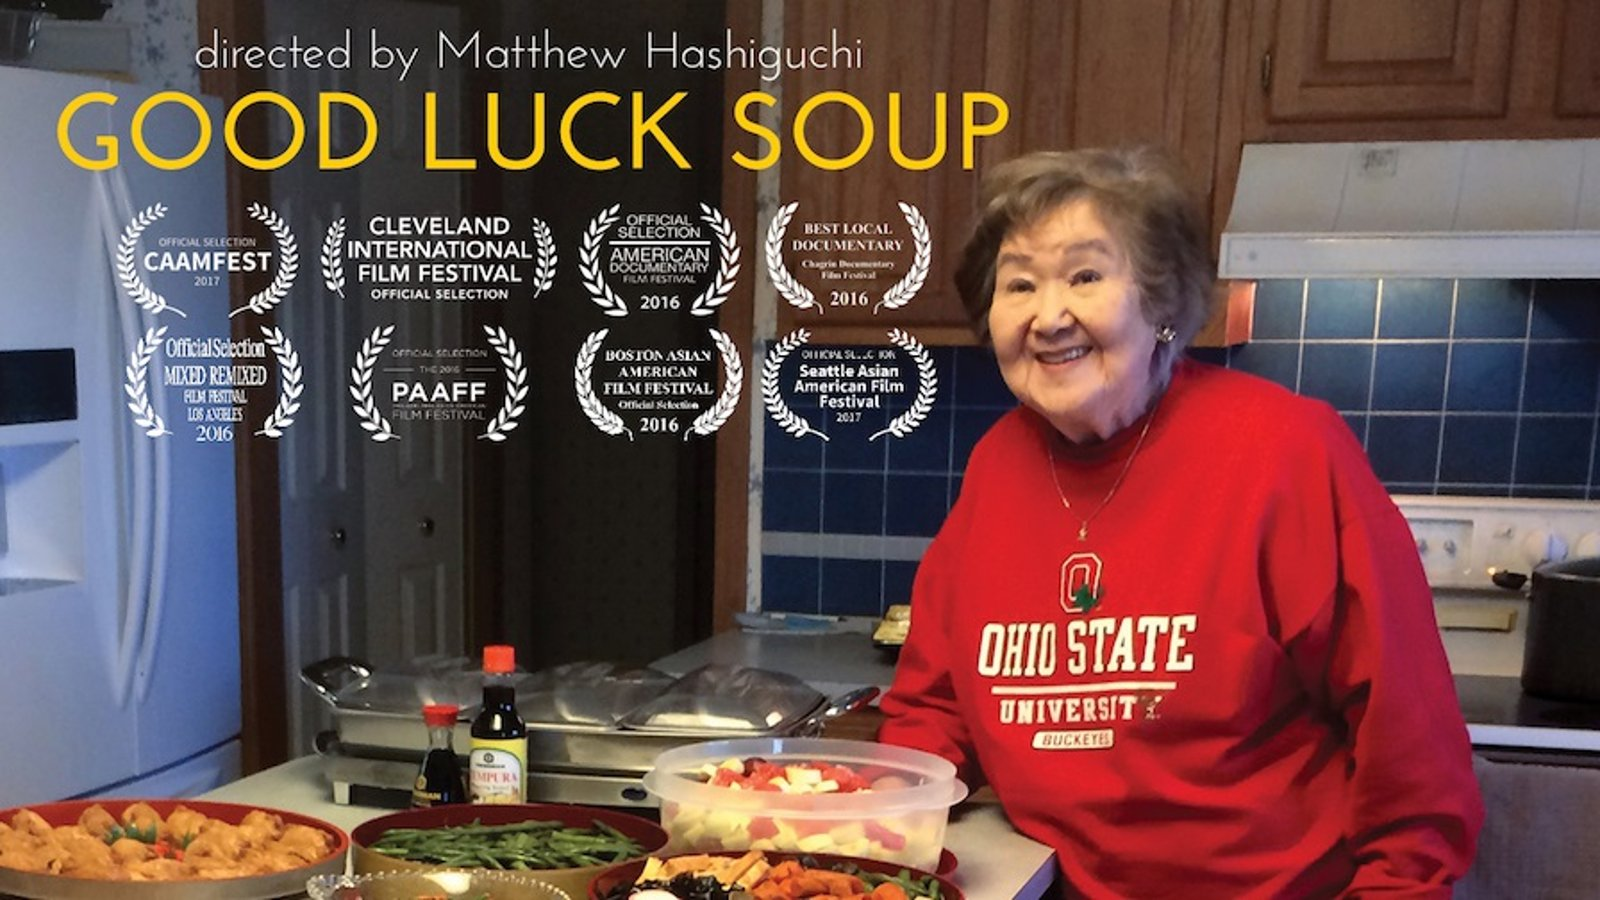 Good Luck Soup - Growing Up Mixed Race in White Suburbia